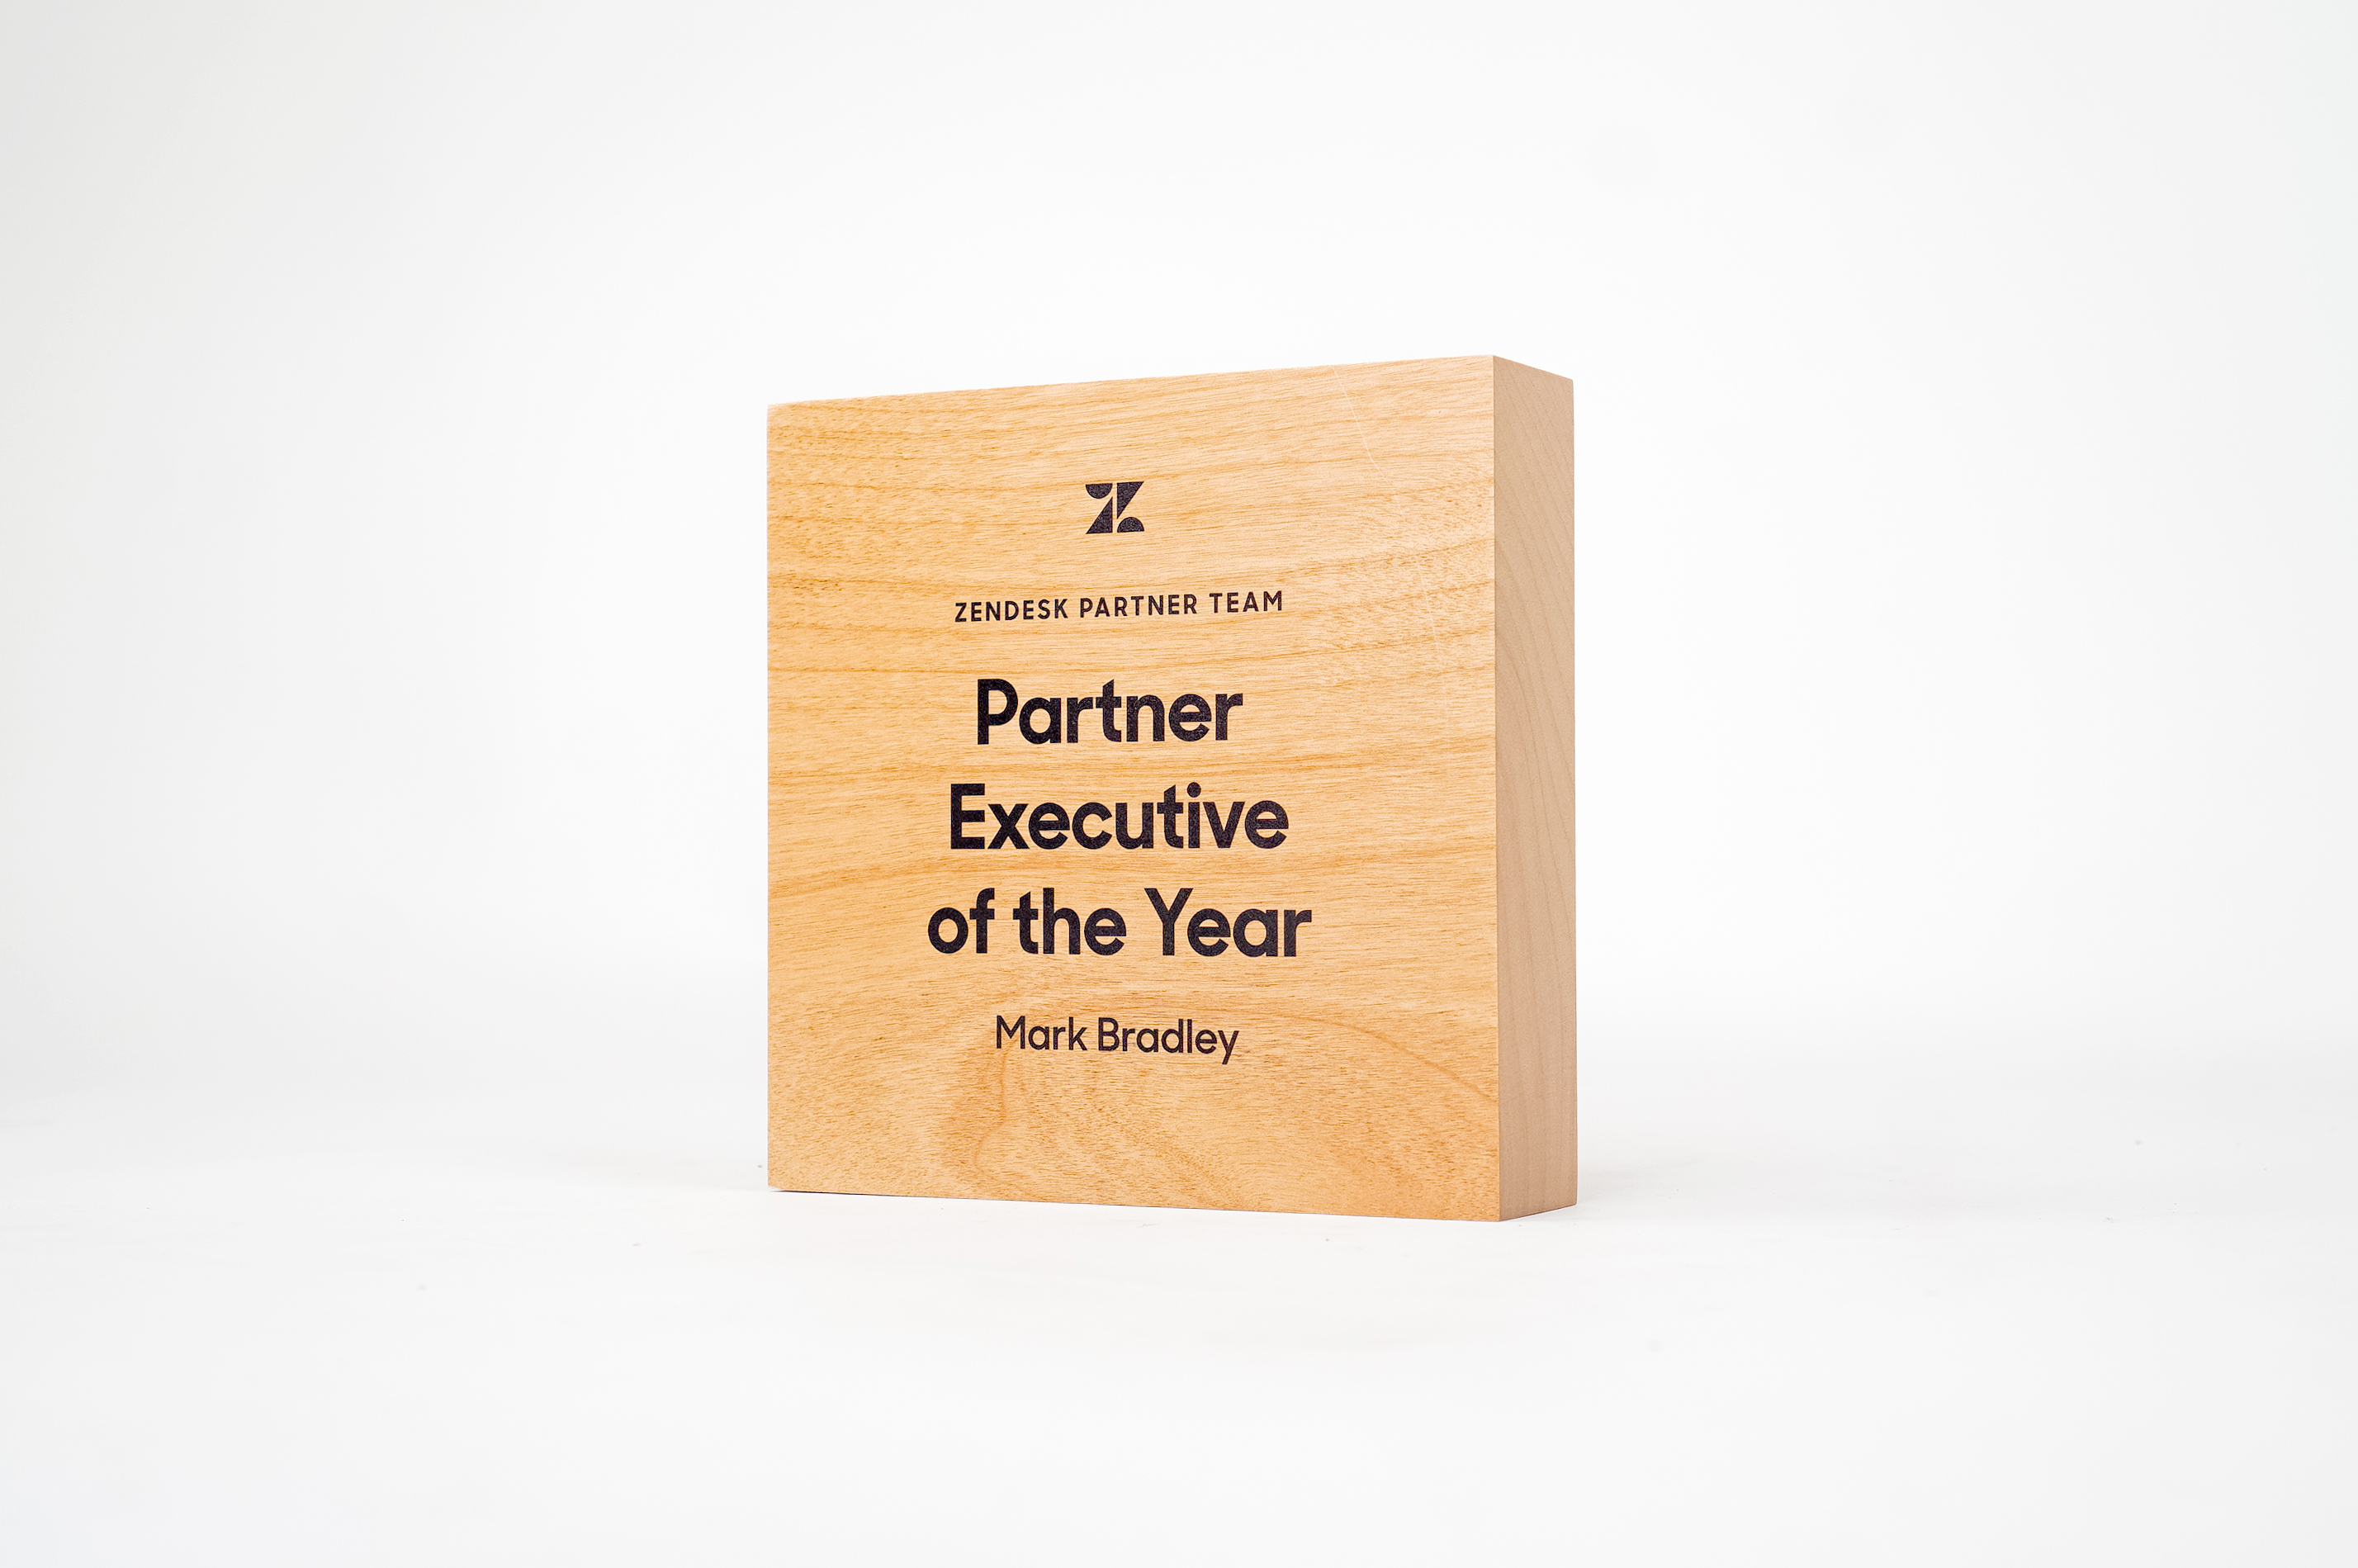 Simple, solid light wood, executive of the year award for Zendesk, a customer service software company headquartered in San Francisco, California.